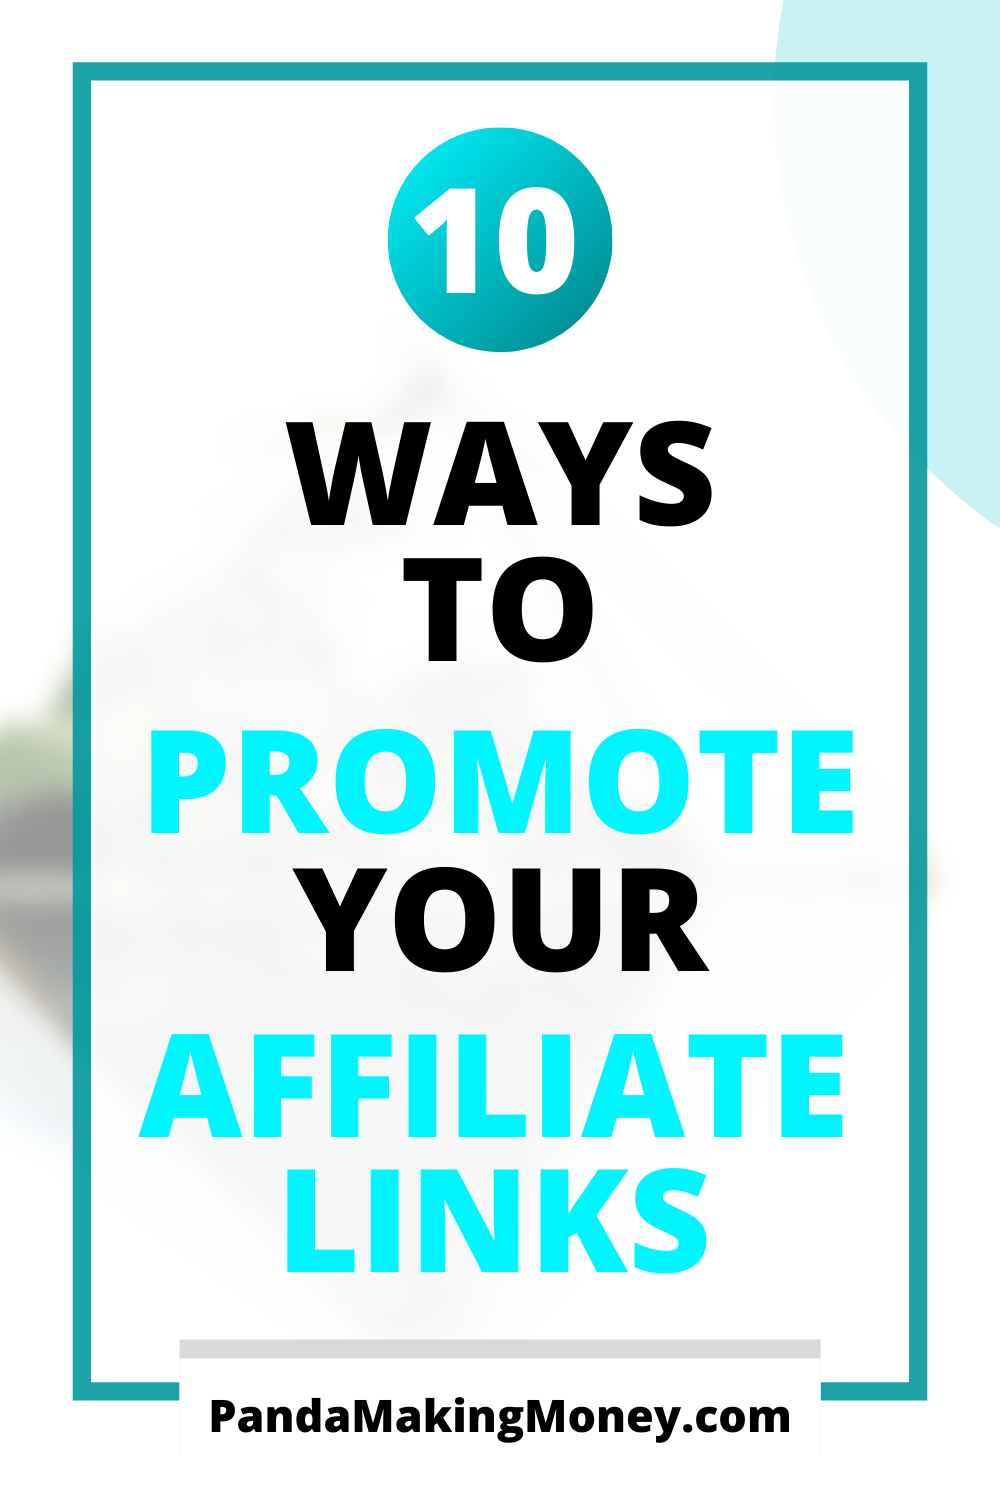 10 Ways To Promote Your Affiliate Links in 2020